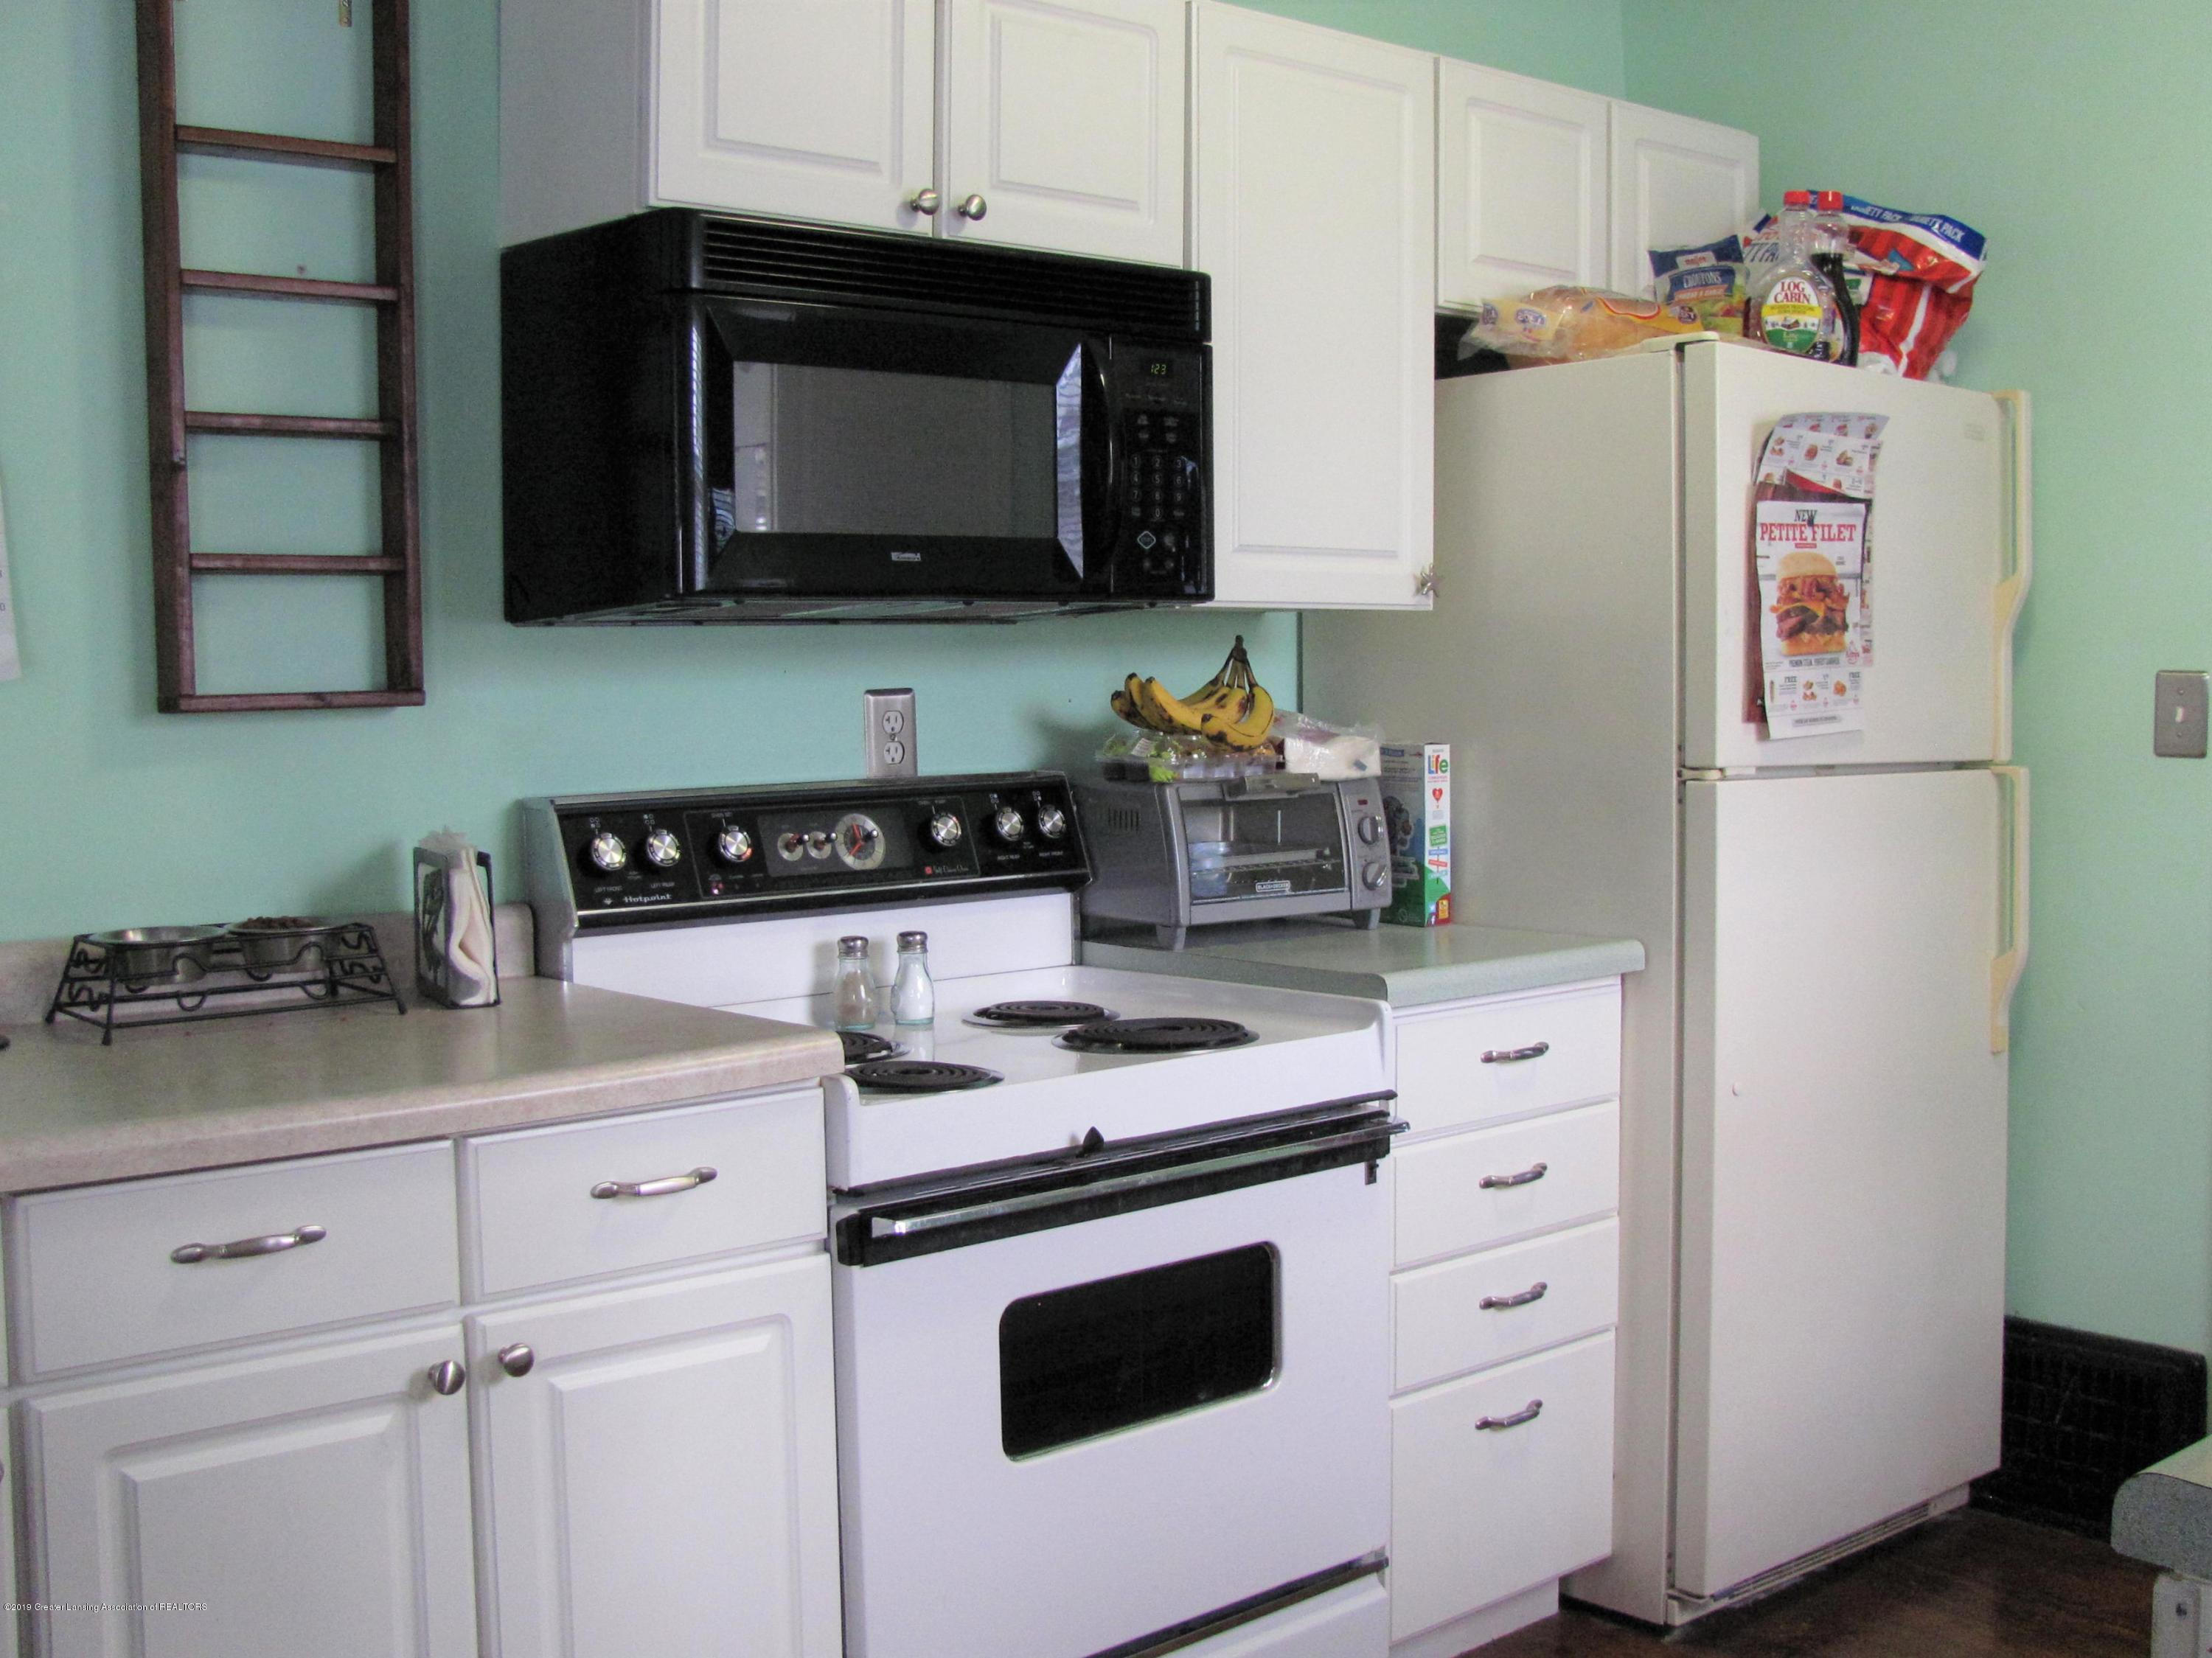 629 N Fairview Ave - Kitchen - 18